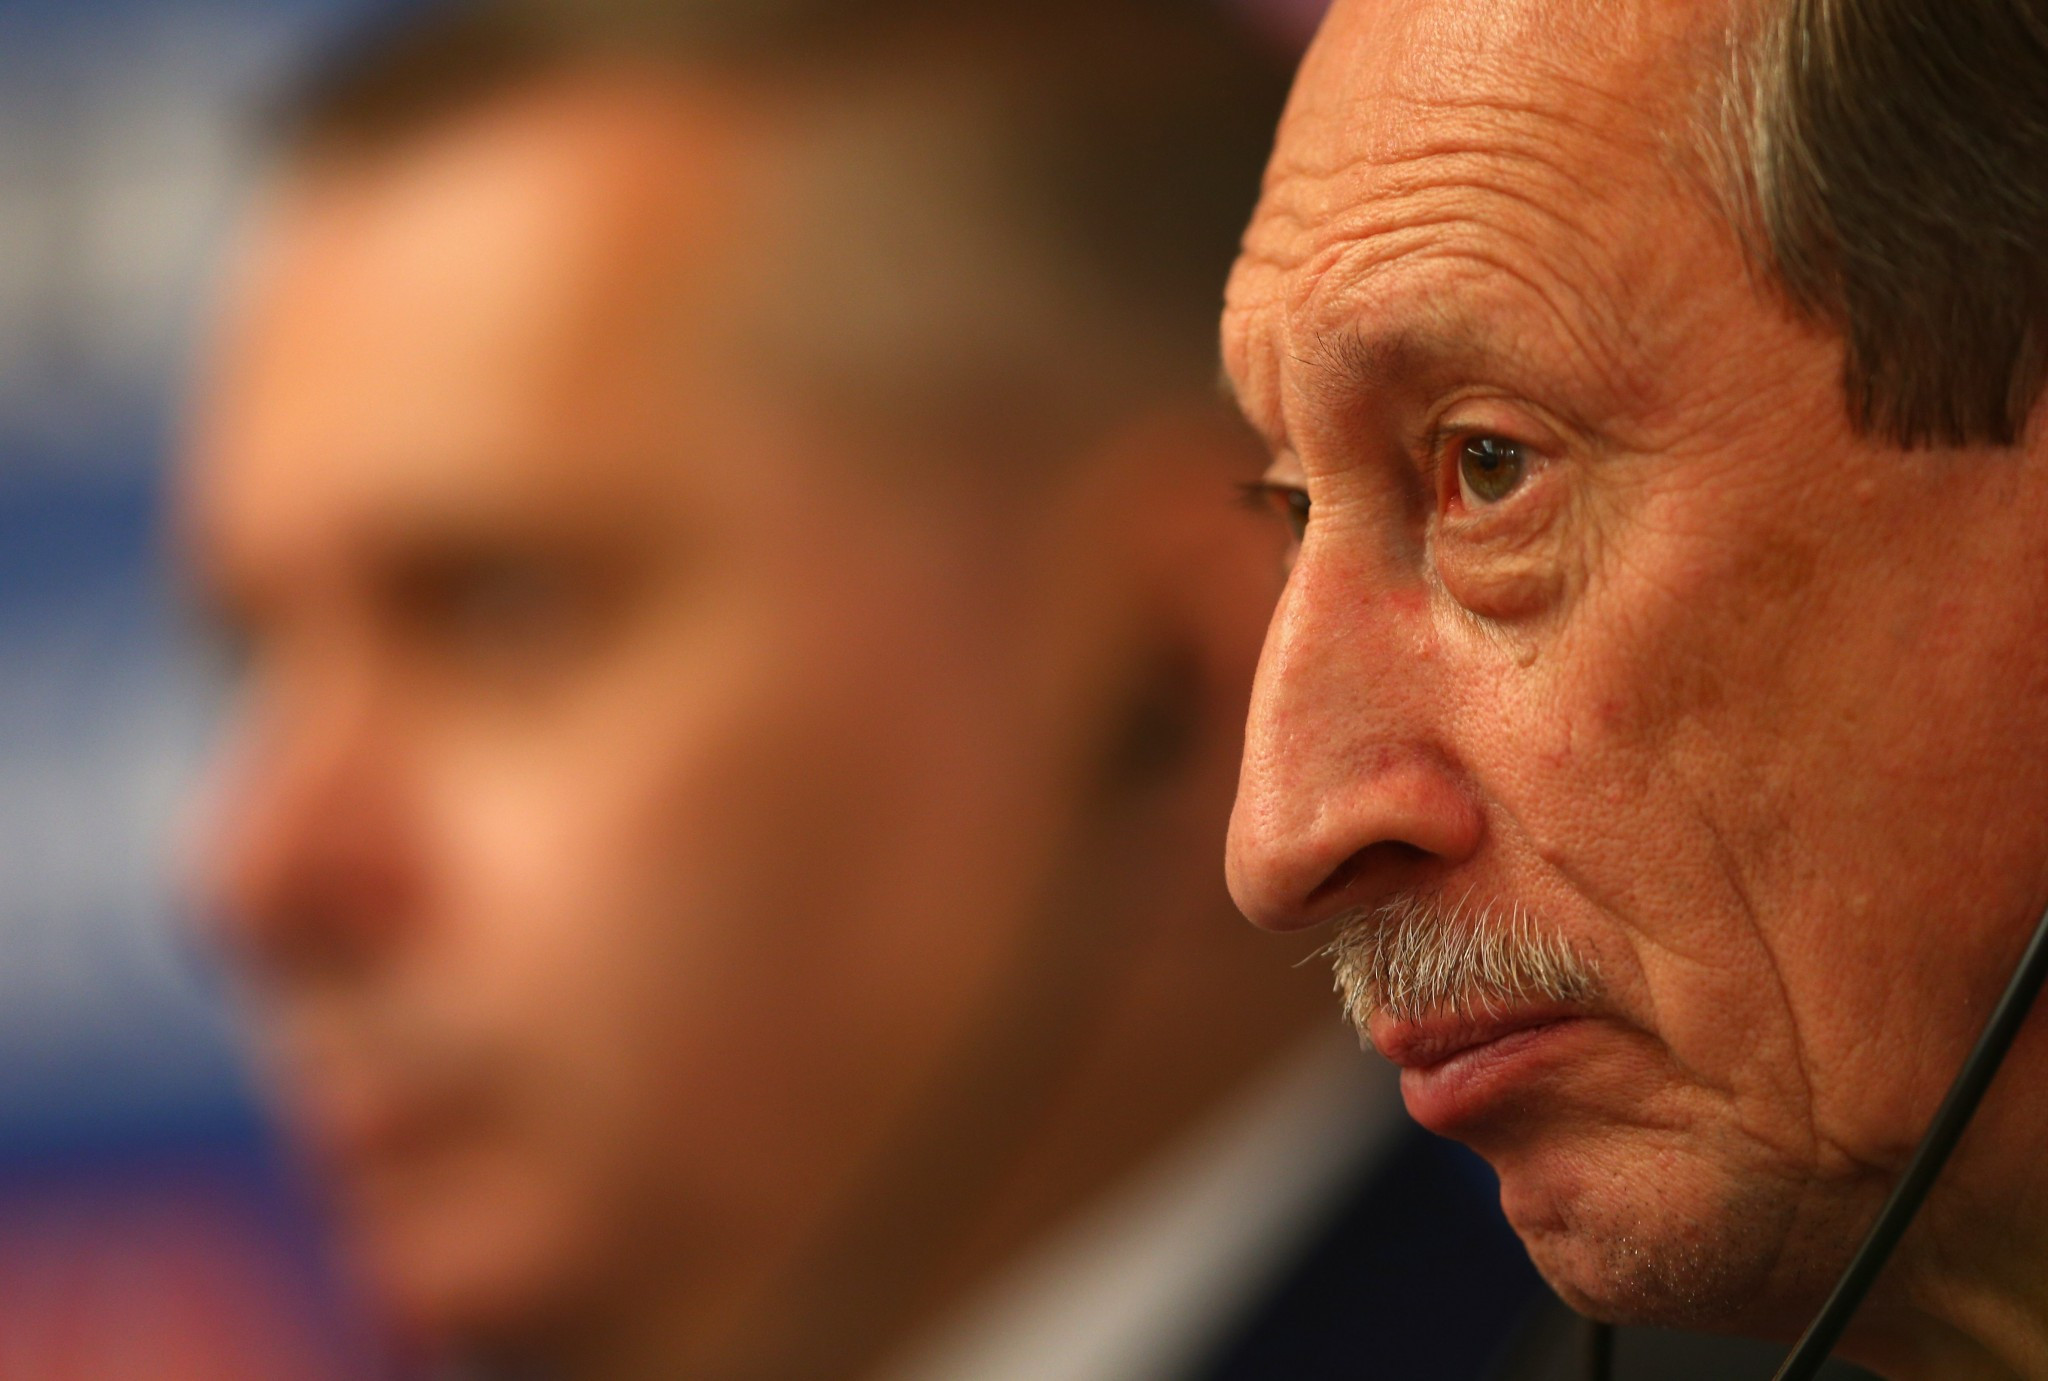 Balakhnichev rules out further appeal against life ban from athletics